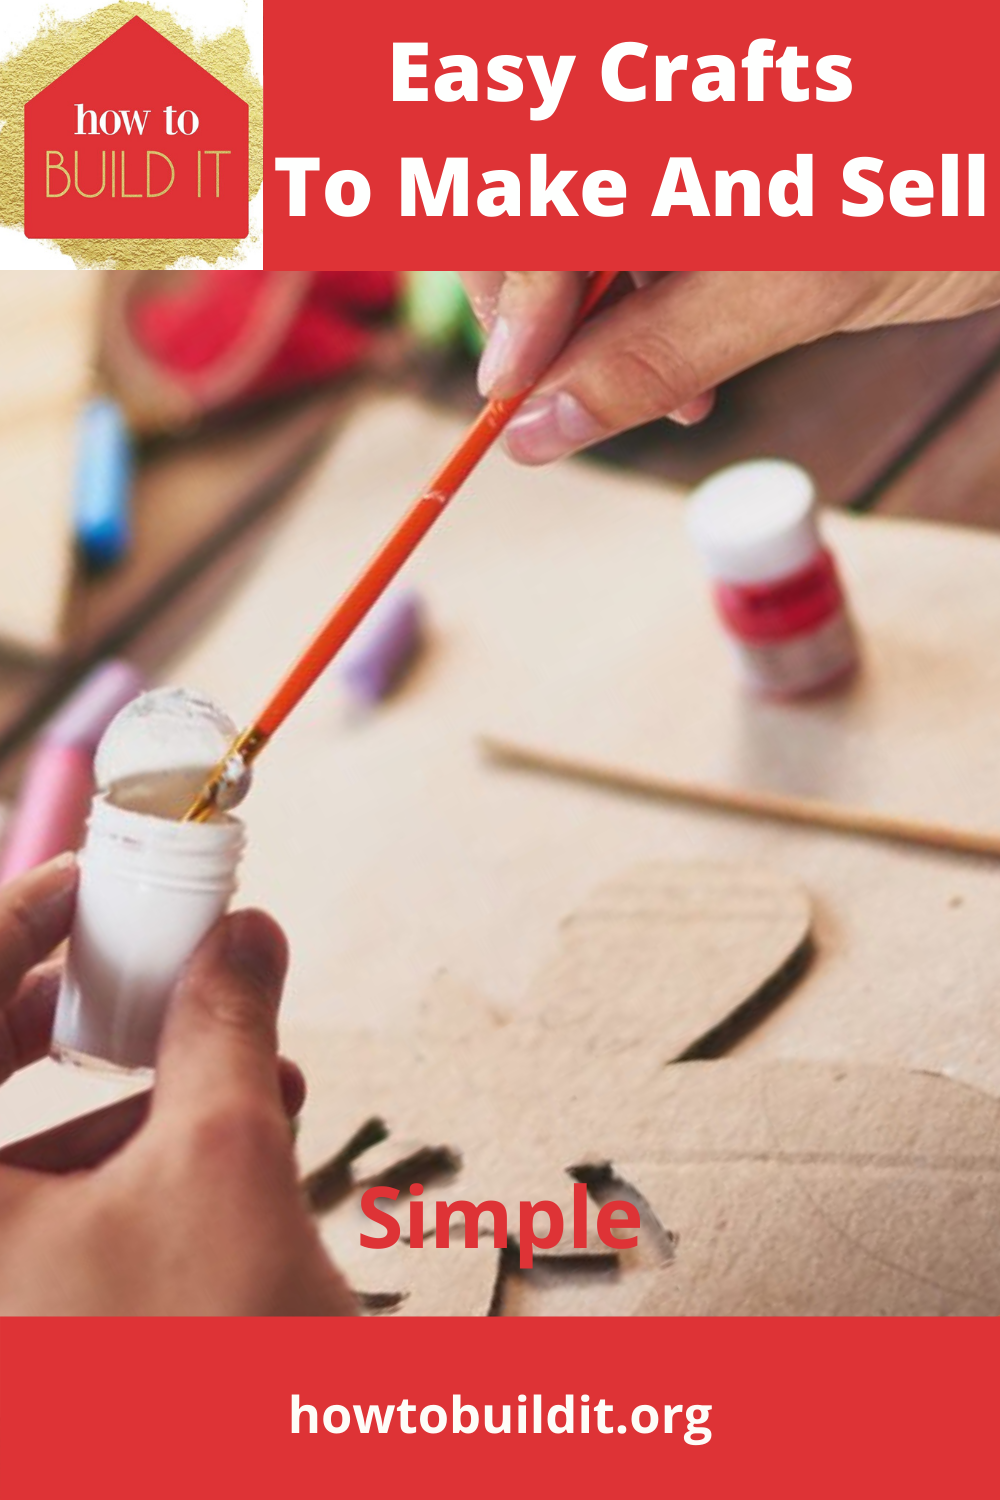 Do you have some free time that you need to fill? Perfect! We have some easy craft ideas that you can make and sell. Why not take advantage of your free time and your crafty skills to make money. Read the post to learn more. #craftstosell #waystomakemoneyfromhome #DIYcraftstomake #craftstomakeandsell